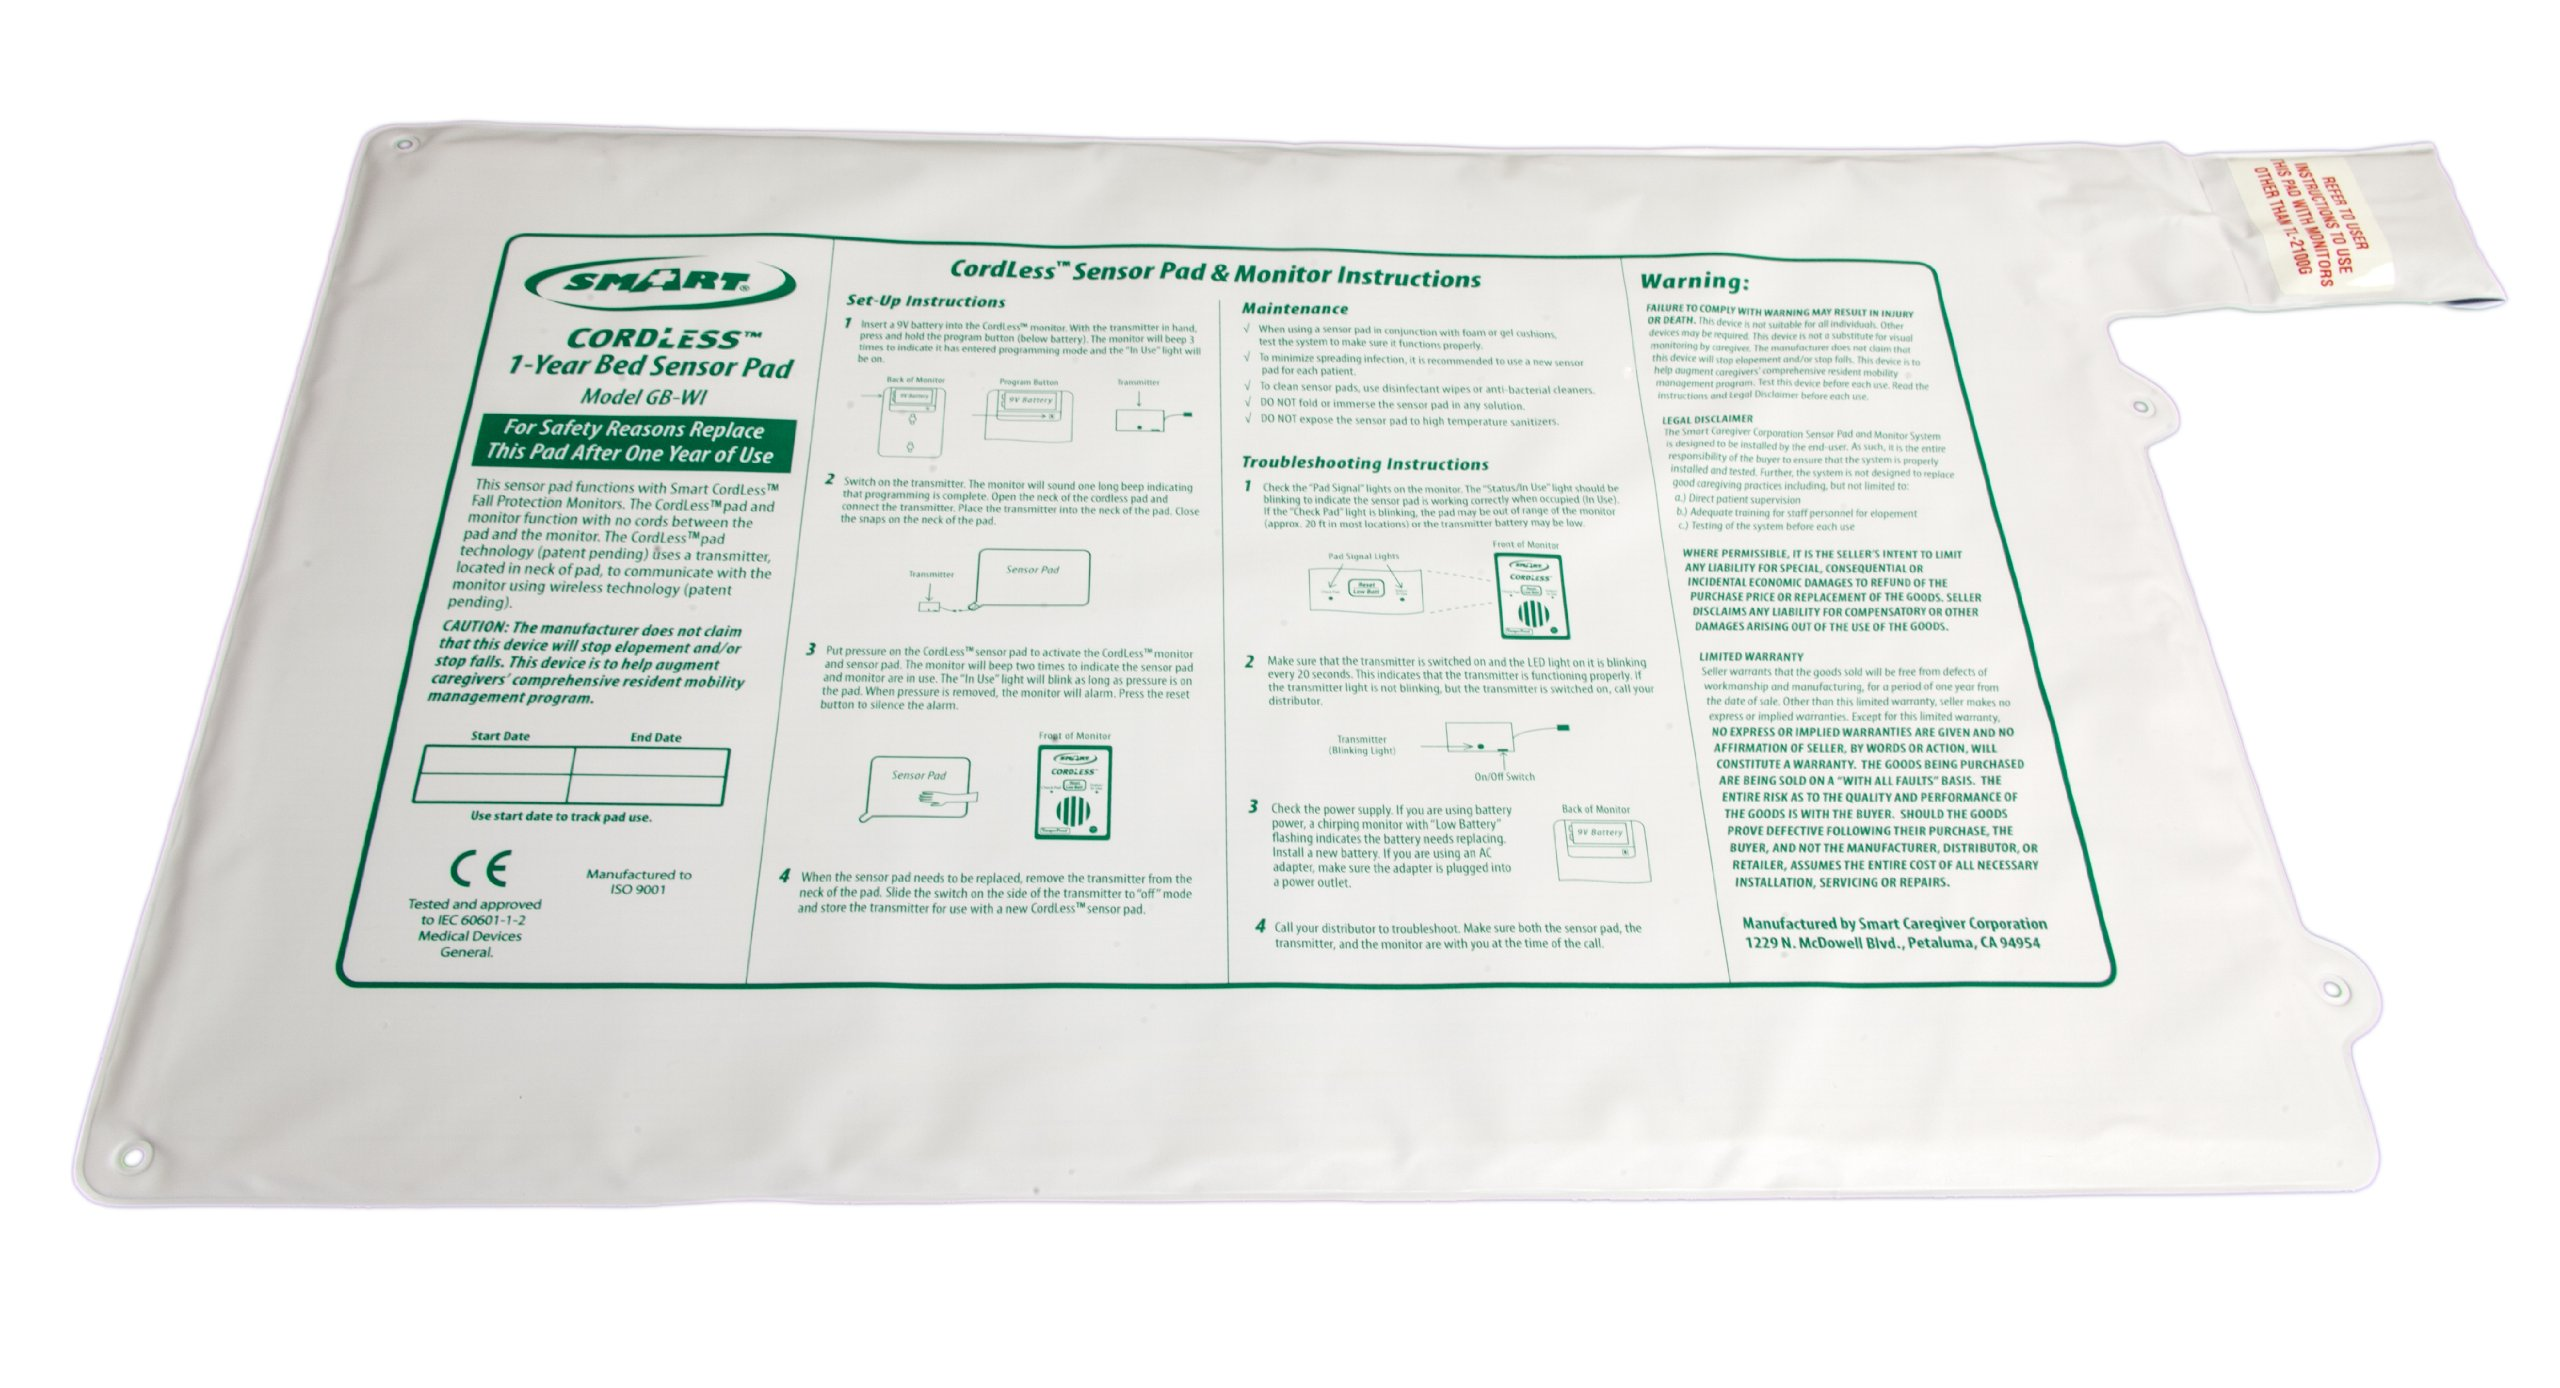 Smart Caregiver Wireless Bed Alarm Alert - 20 by 30 Inch Pad by Smart Caregiver